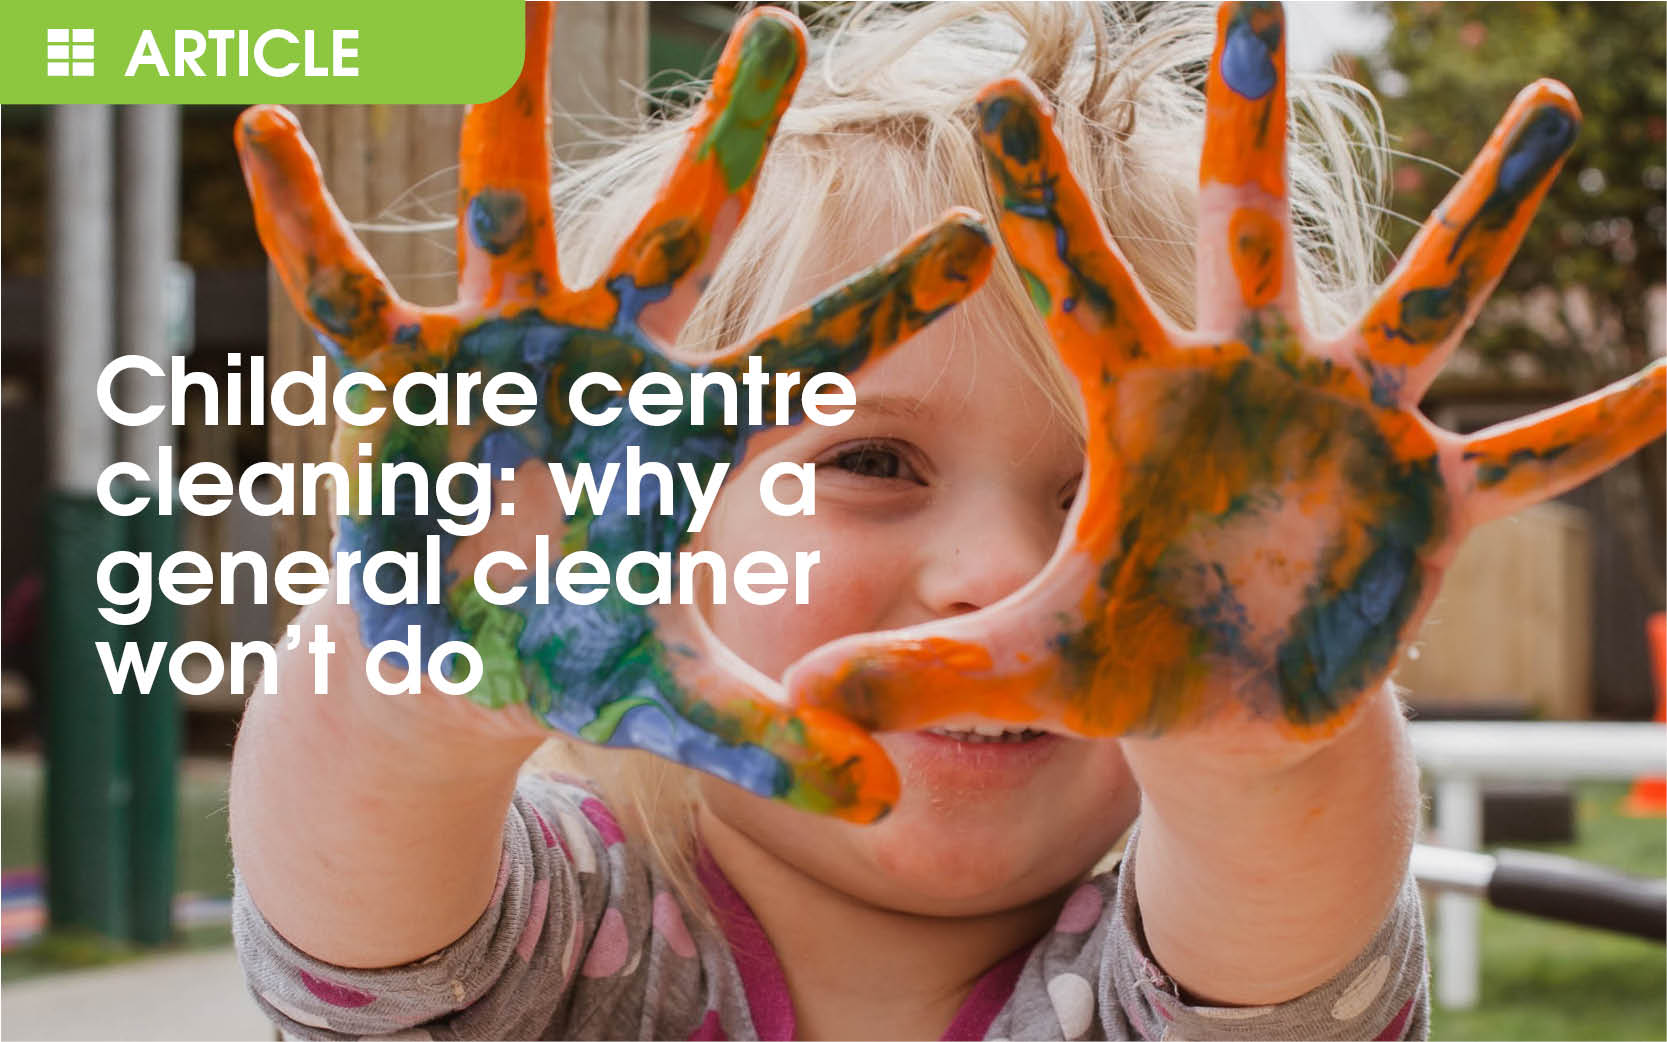 Childcare centre cleaning: why a general cleaner won't do